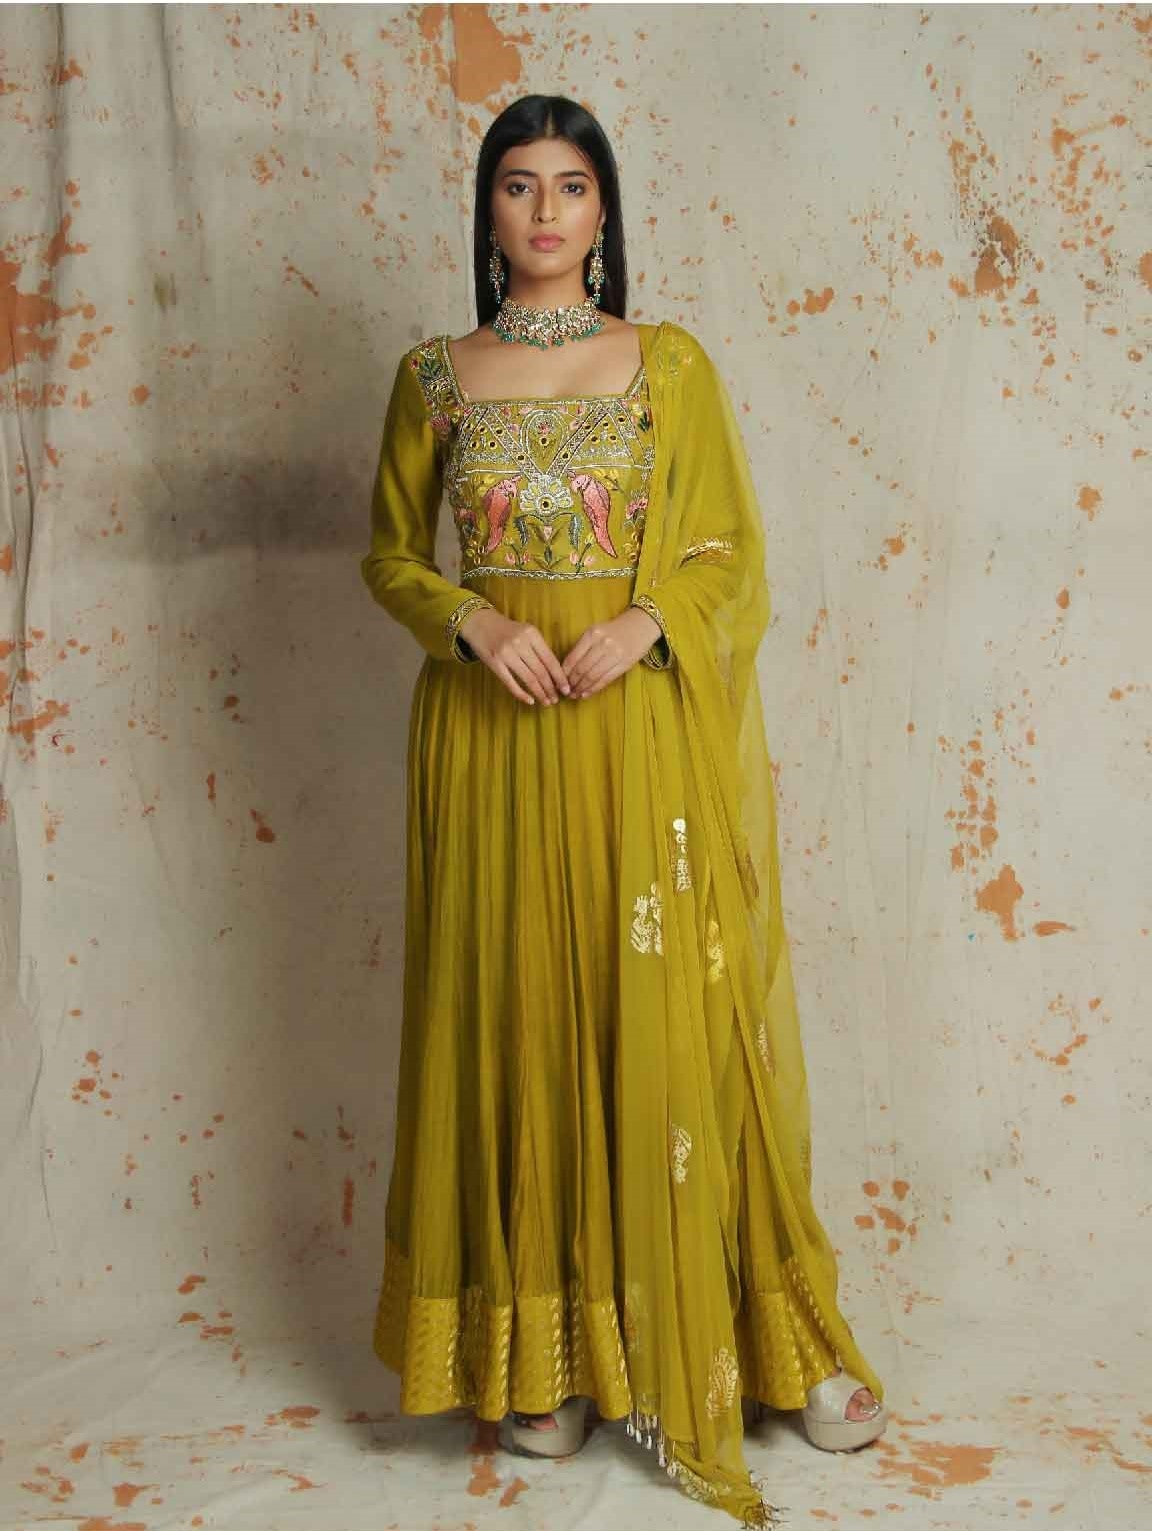 Daaria anarkali suit by karigiri